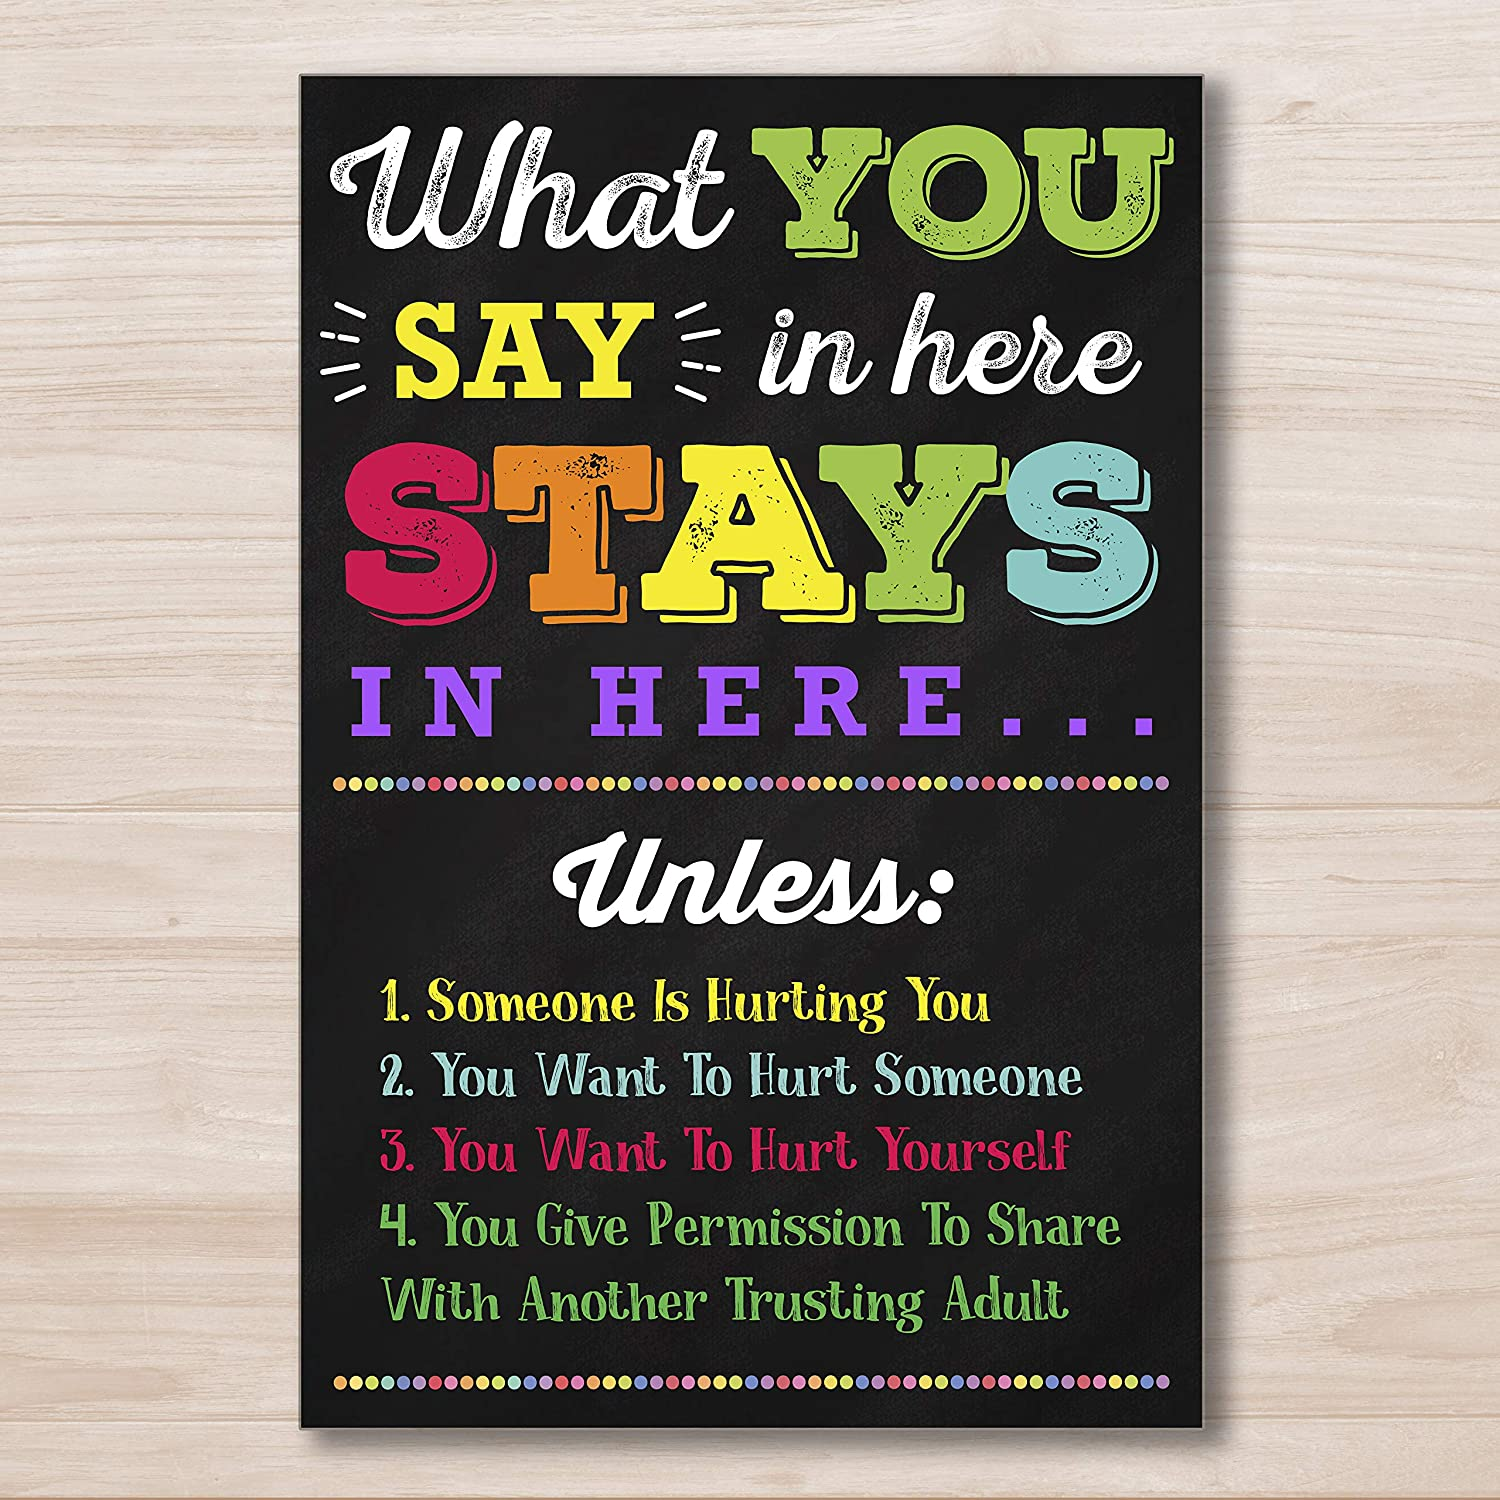 What You Say in Here Poster, Counselor Office Decor, Therapist Office, Counseling Office Confidentiality Poster, Counselor Gift, Social Worker Sign